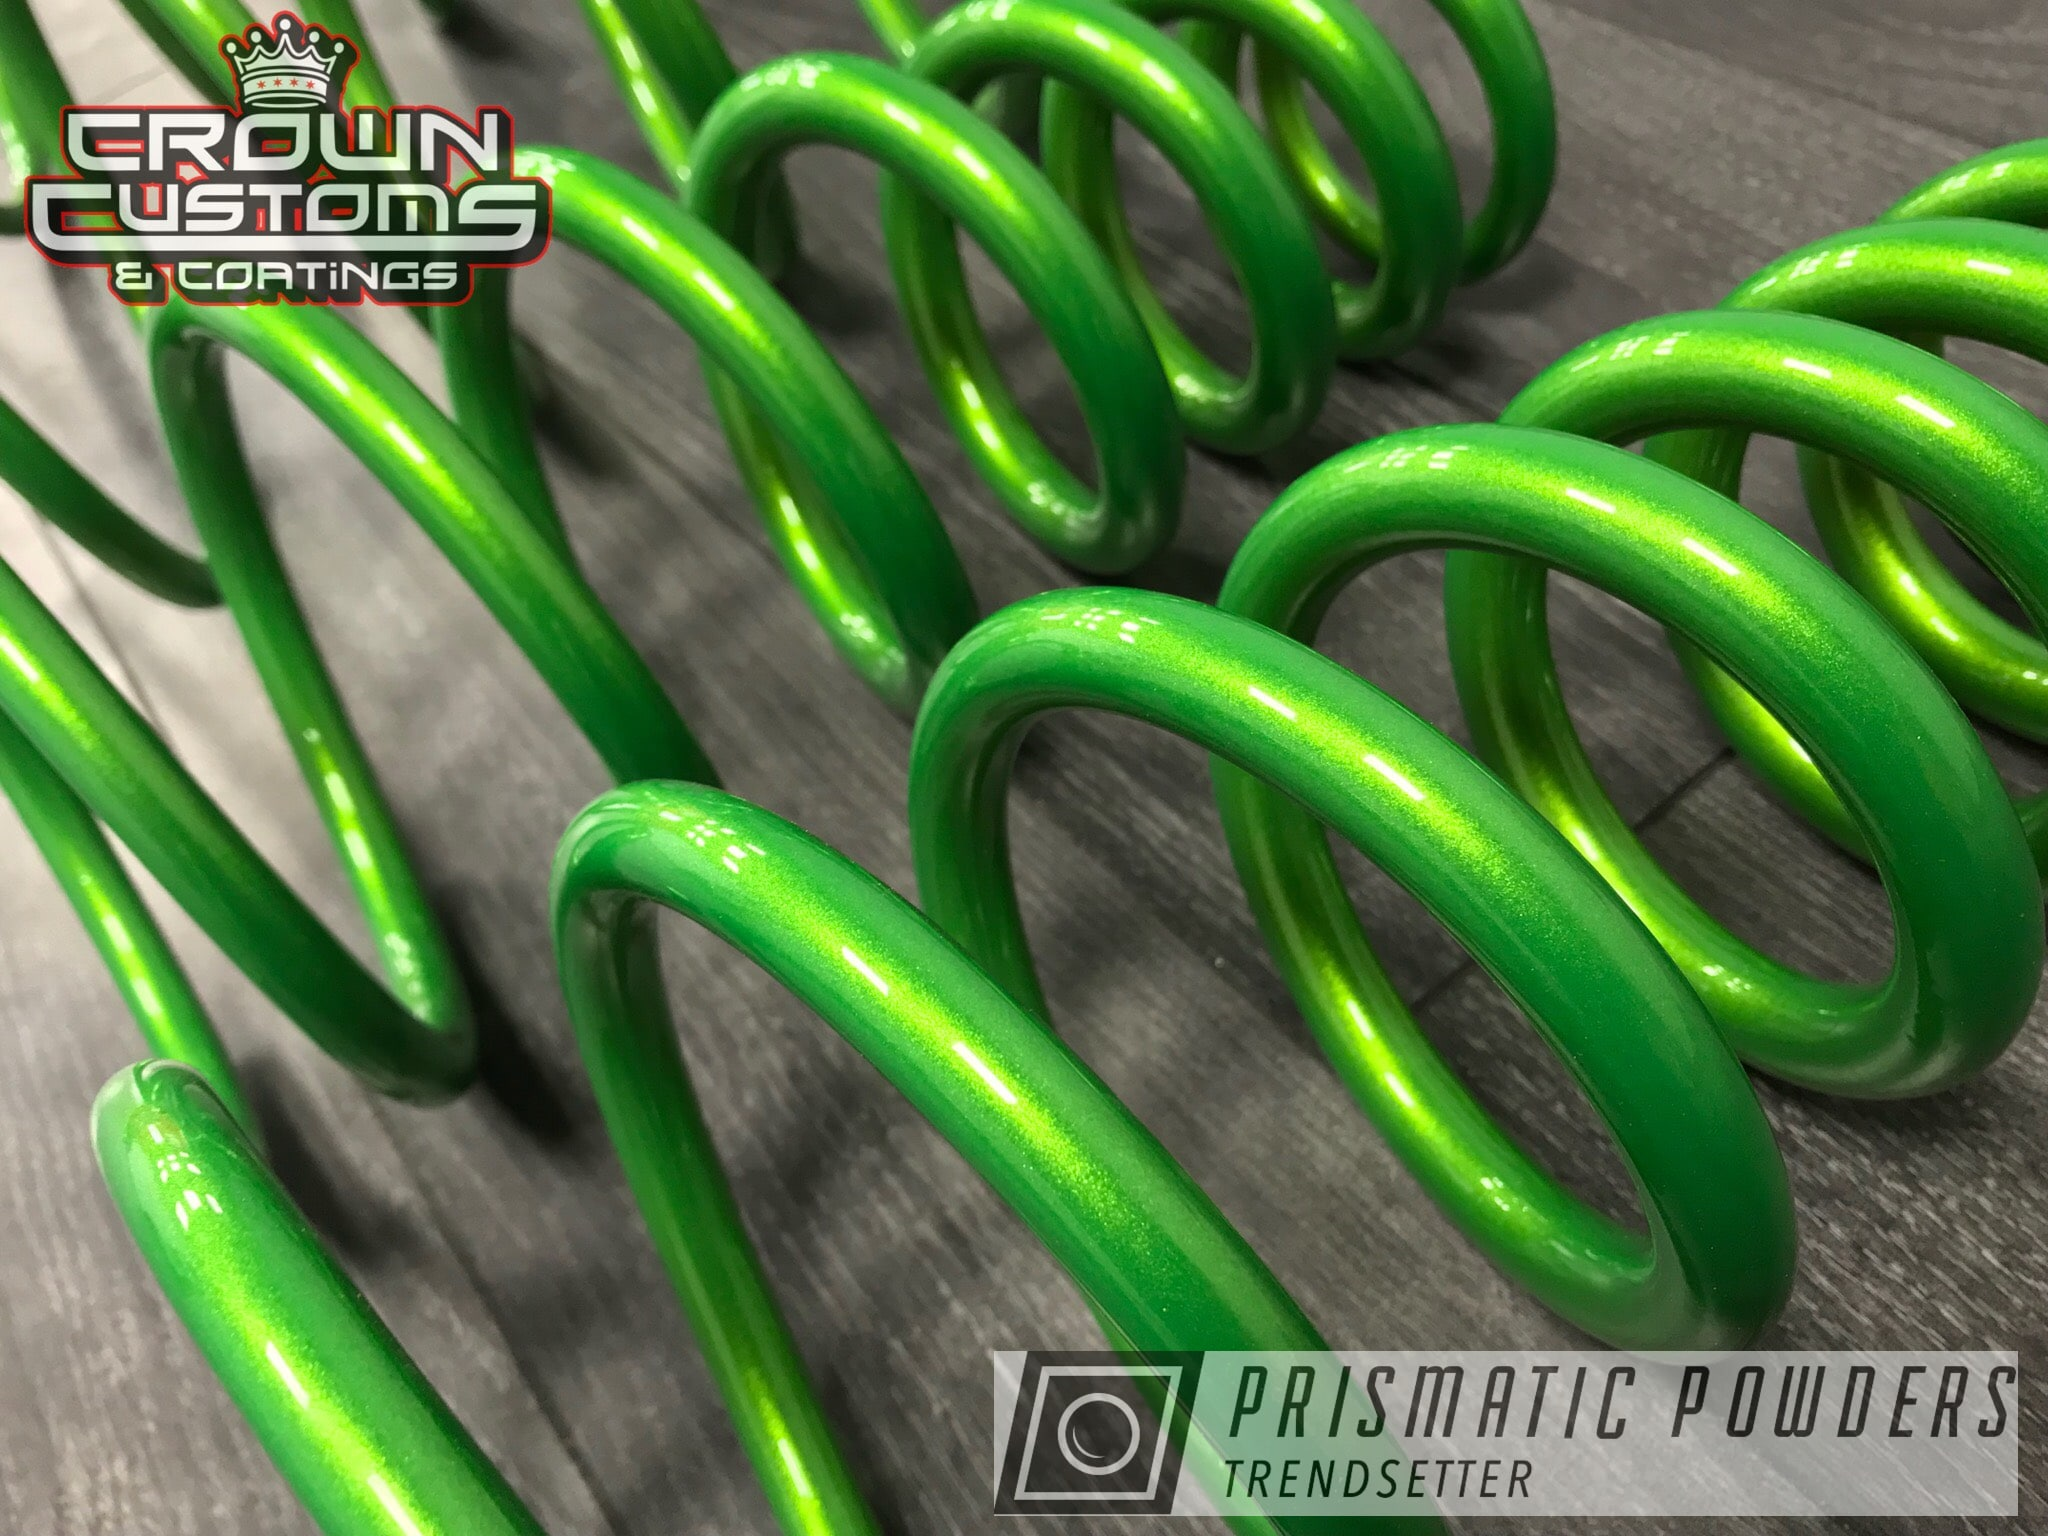 Powder Coating: Clear Vision PPS-2974,Two Stage Application,shock,Springs,Illusion Sour Apple PMB-6913,powder coated,Clear Top Coat,green